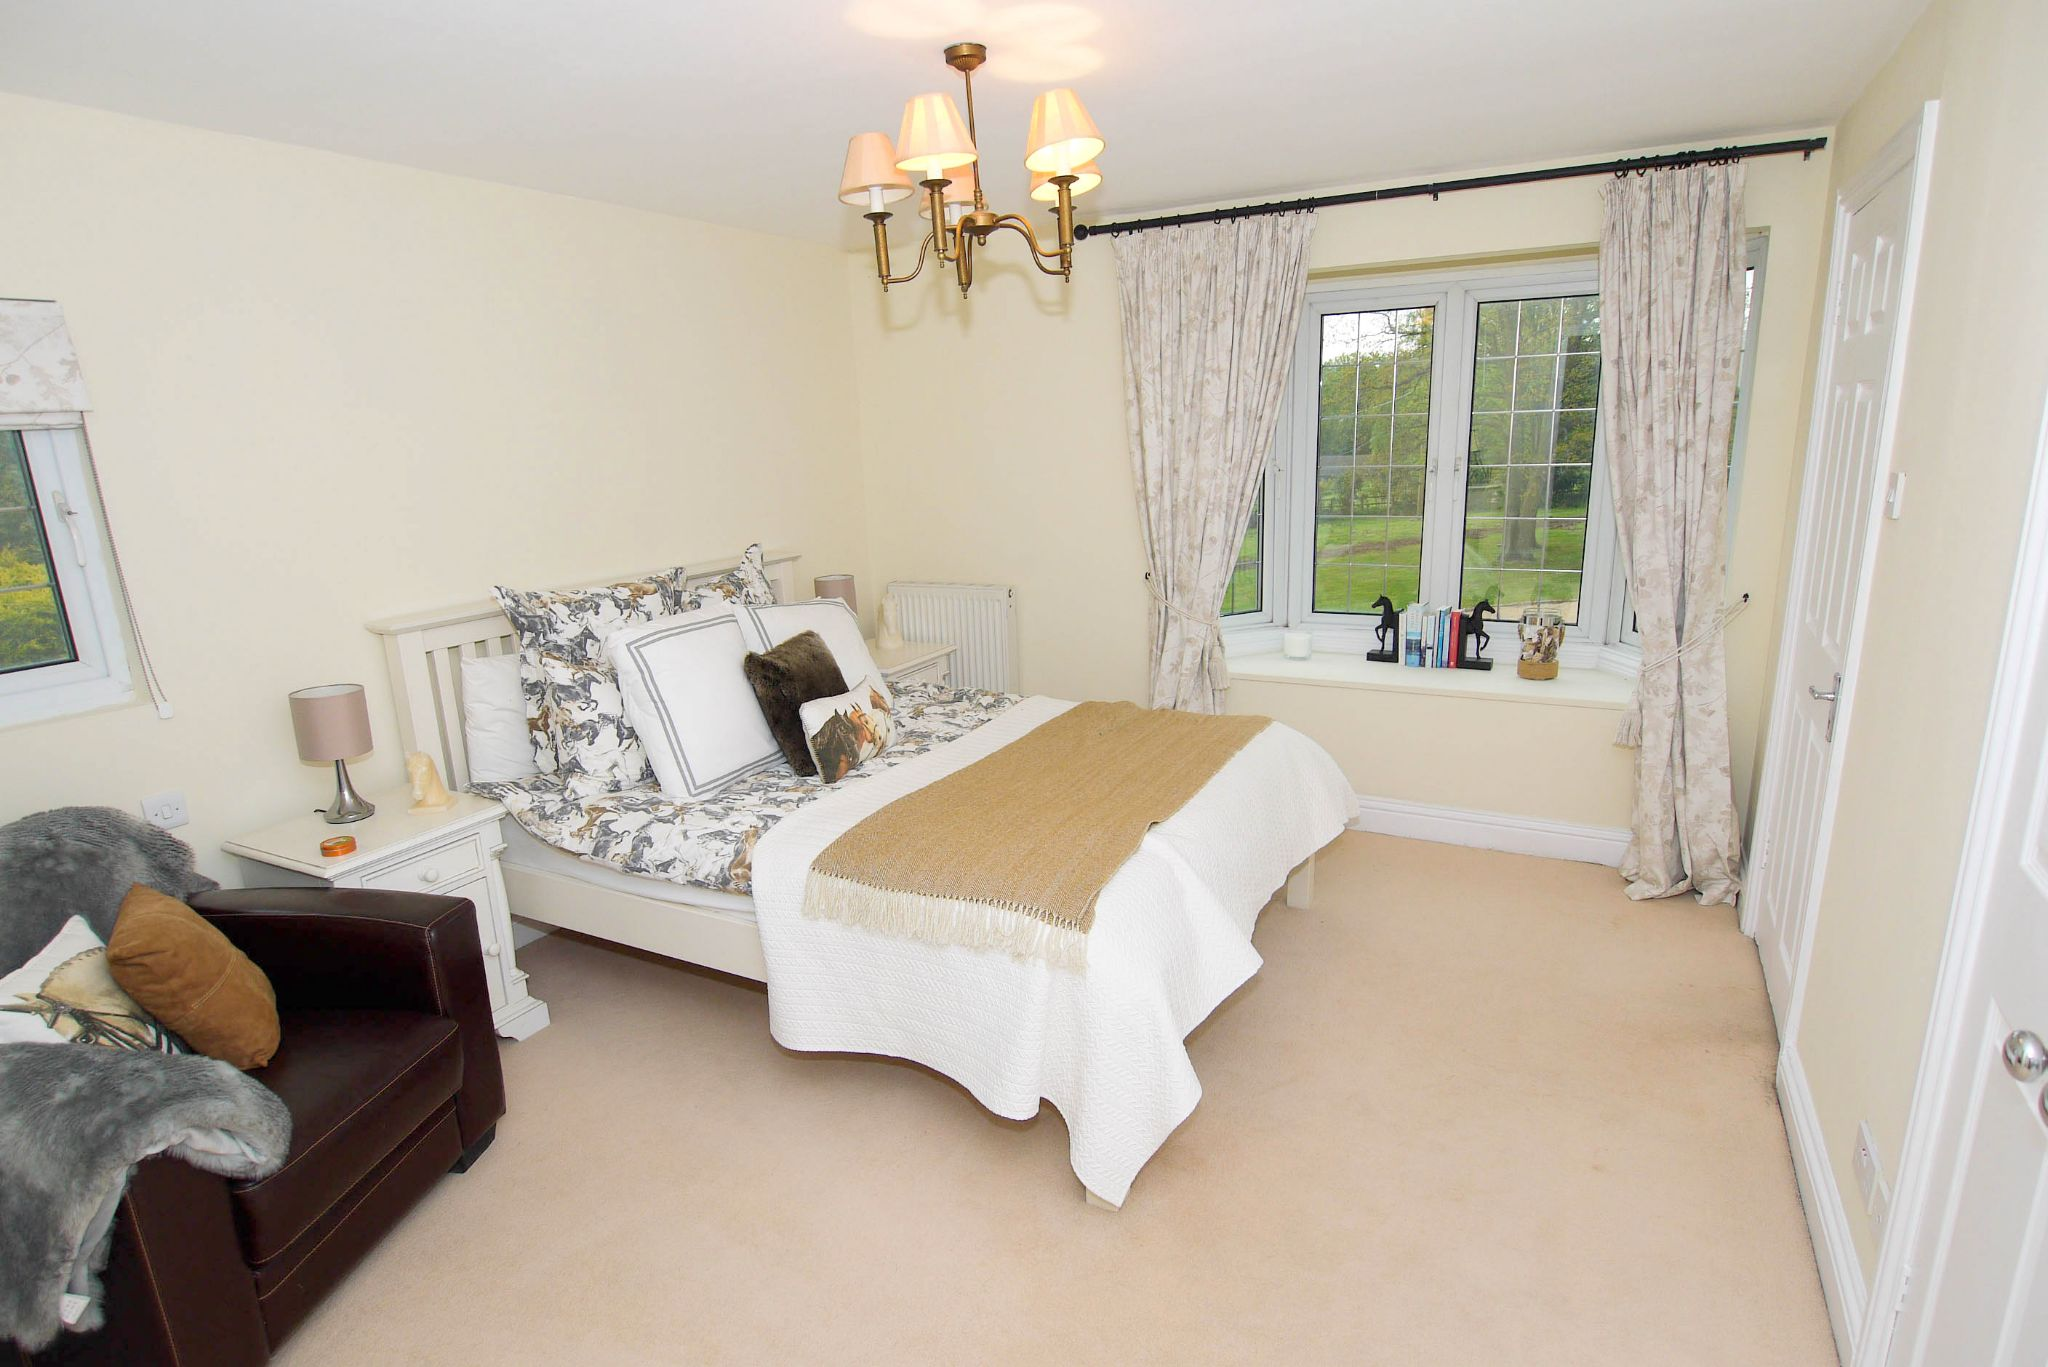 6 bedroom detached house For Sale in Sevenoaks - Photograph 12